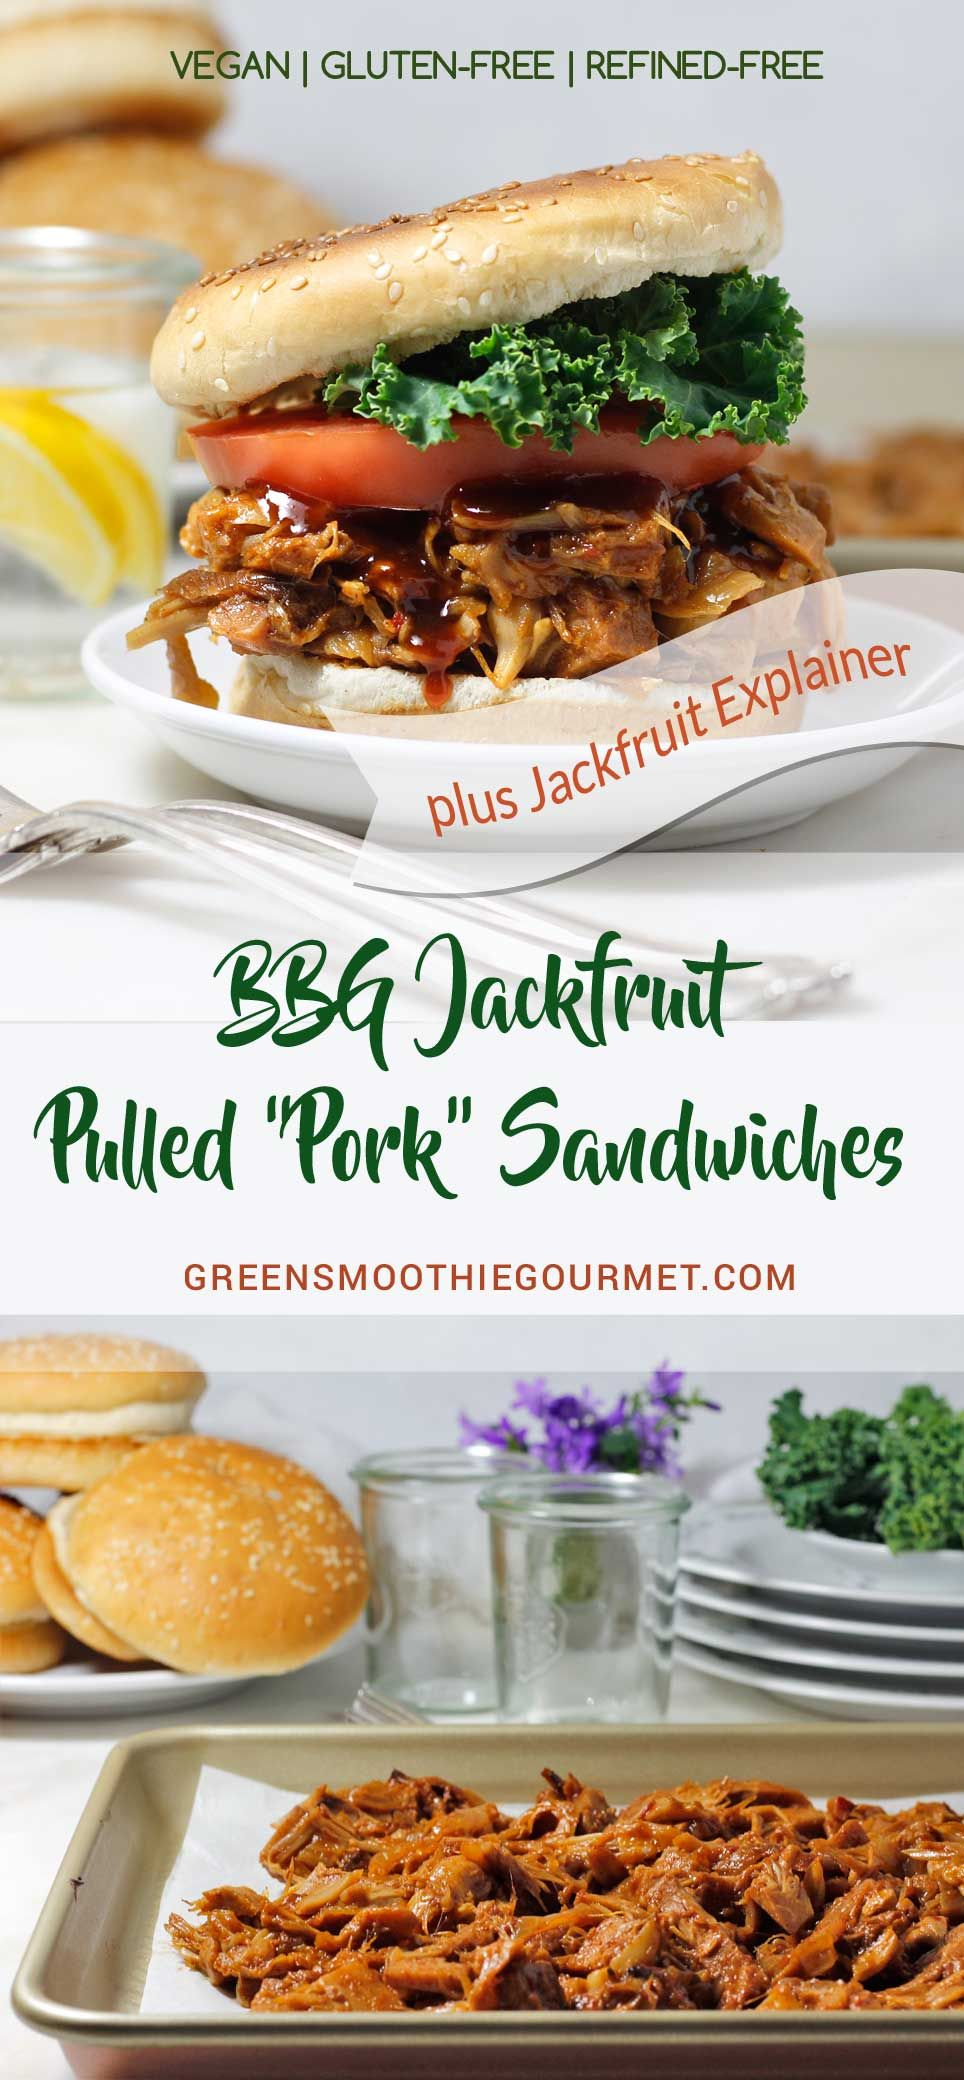 Simple Skillet Bbg Jackfruit Pulled Pork Sandwiches Jackfruit Explainer